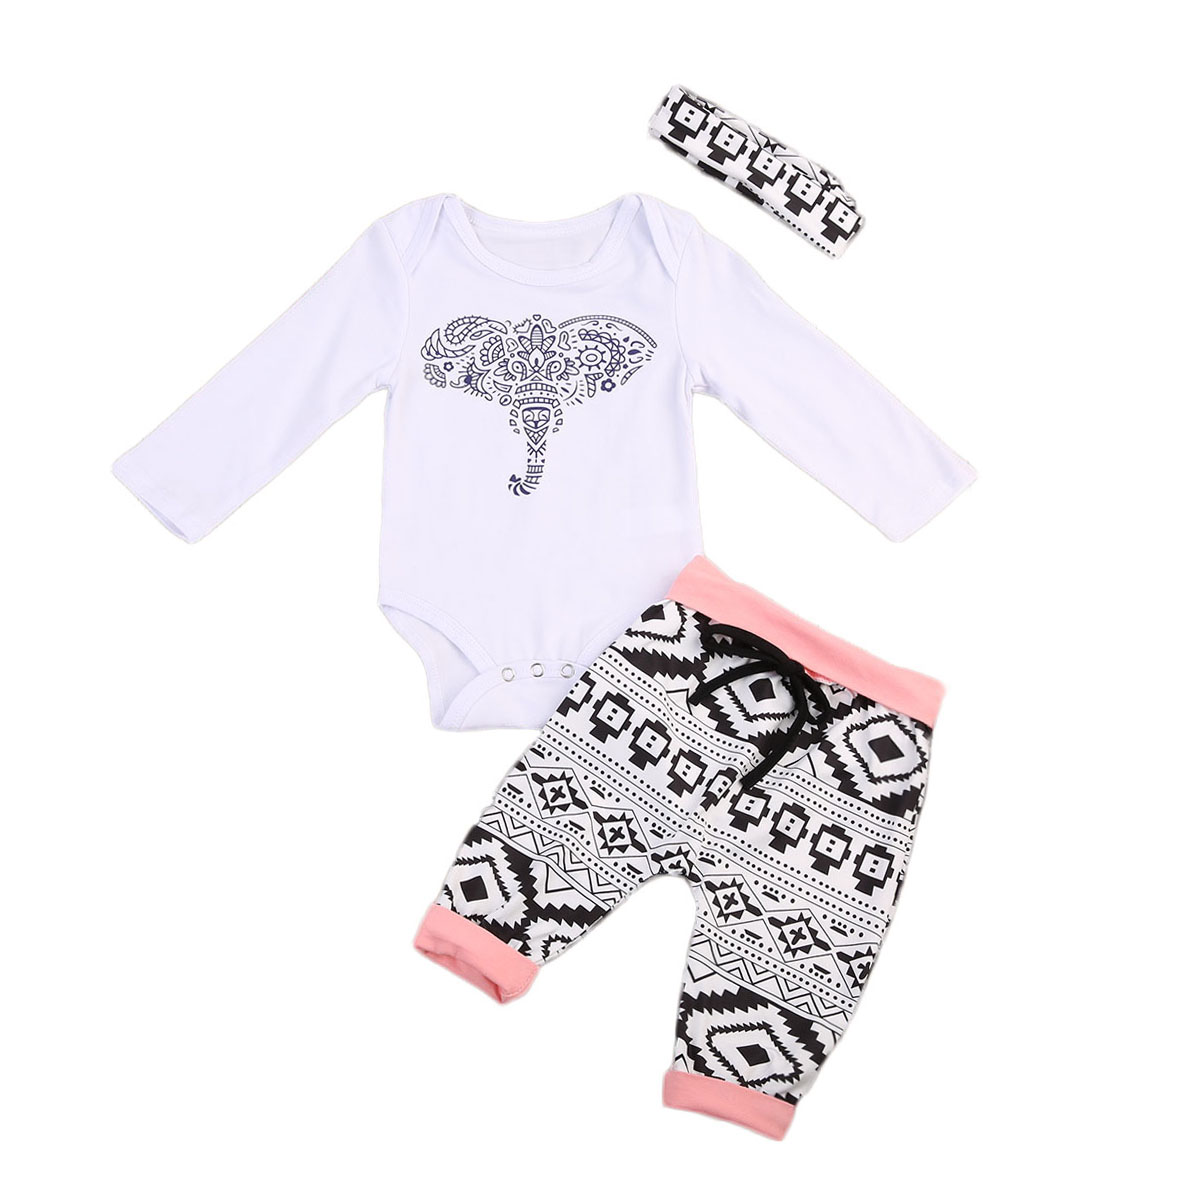 Autumn Newborn Baby Boy Girl Clothes Set Long Sleeve Romper Elephant Tops+Legging Pants Handband 3pcs Infant Clothing Outfits newborn infant baby boy girl cotton tops romper pants 3pcs outfits set clothes warm toddler boys girls clothing set casual soft